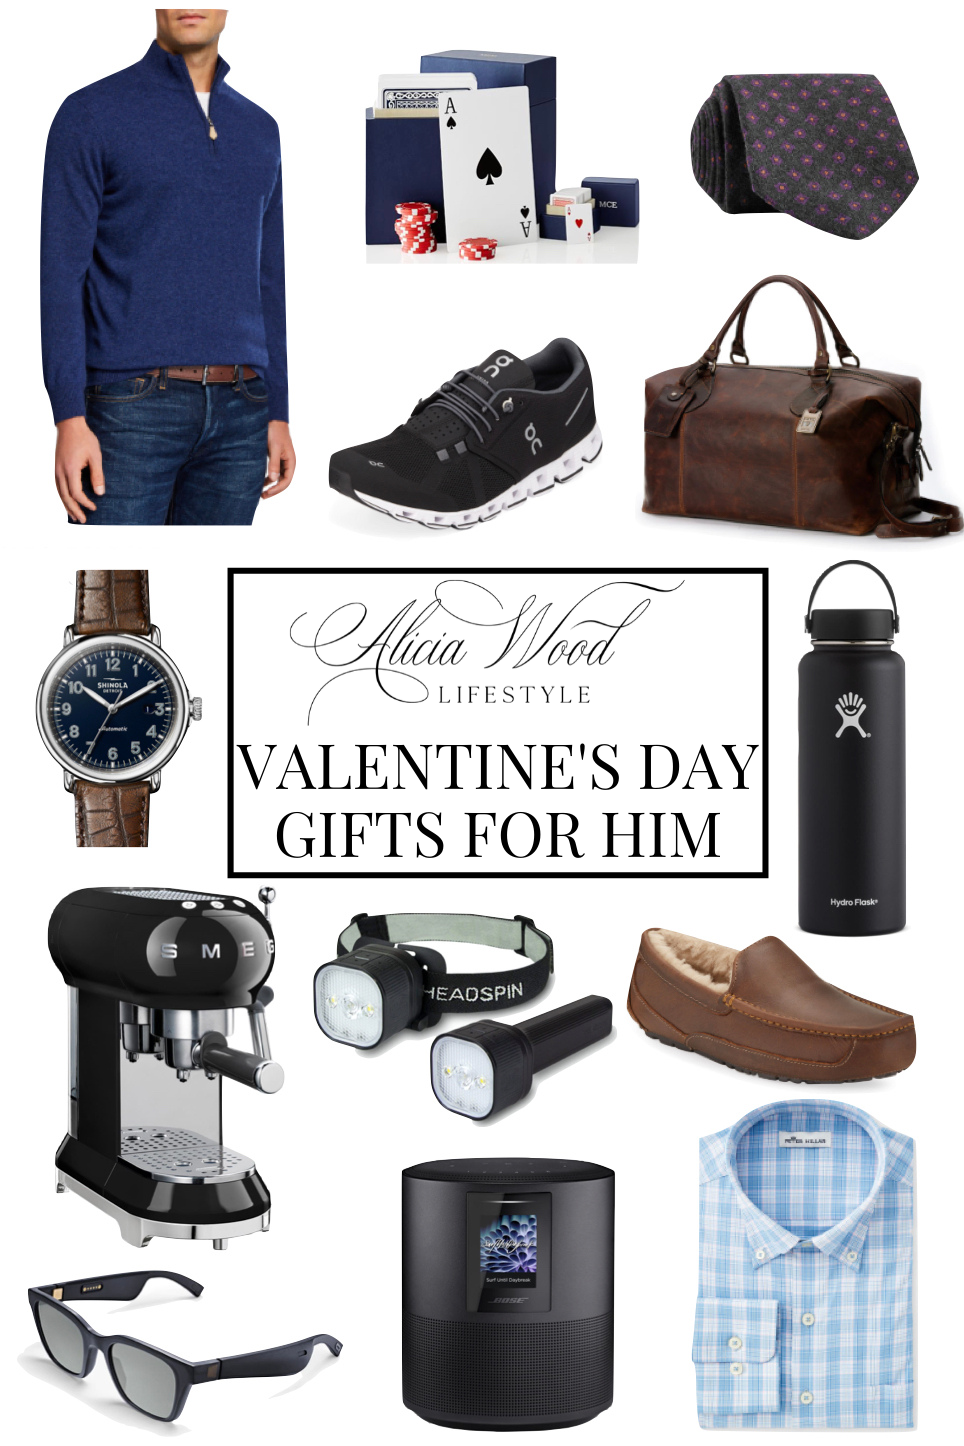 Best Valentine's Gifts for Him